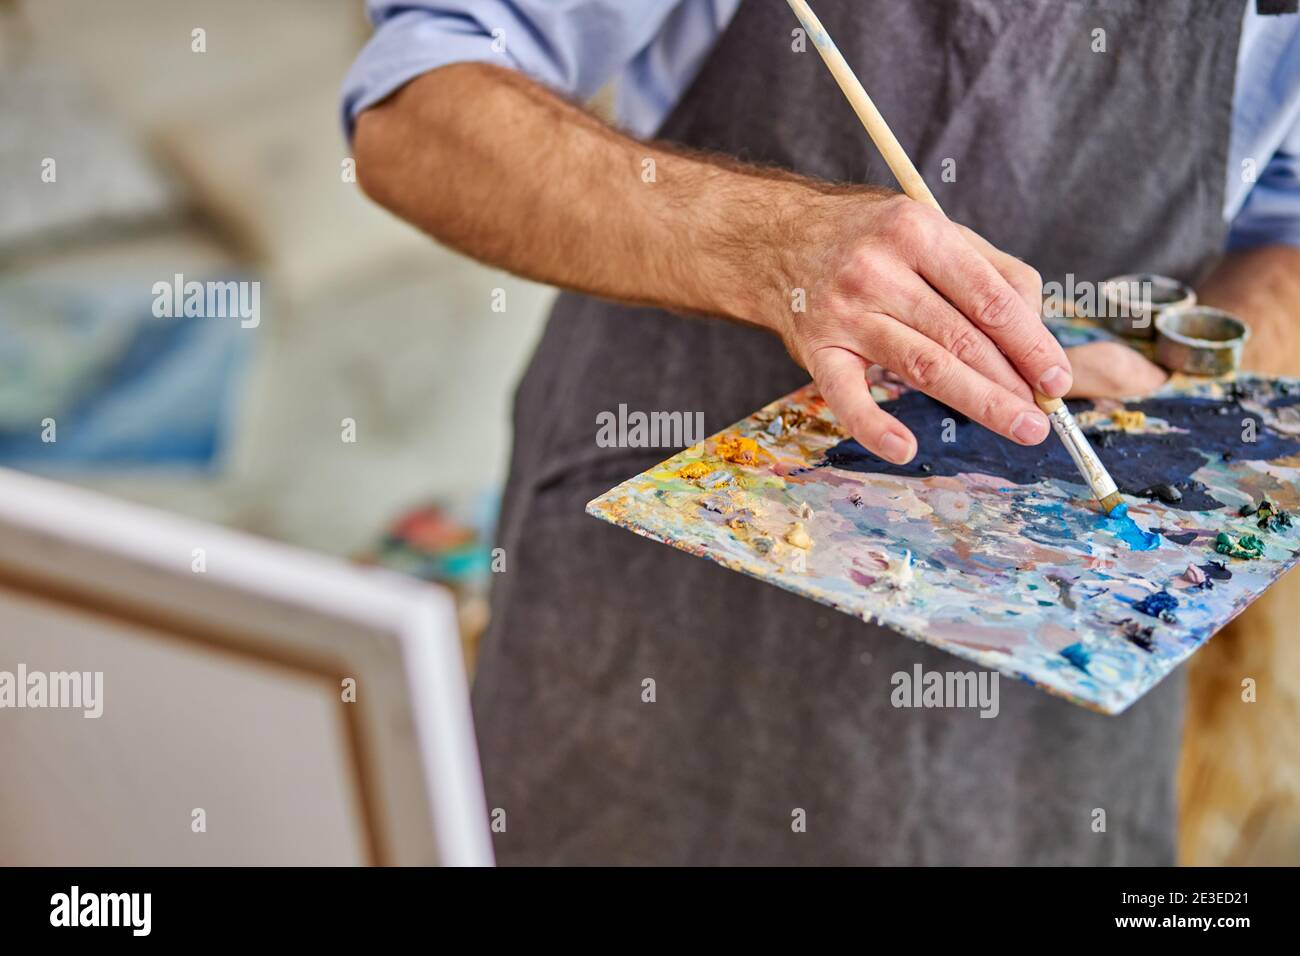 artist mix colors on palette holding in hand close up. creativity, art concept Stock Photo